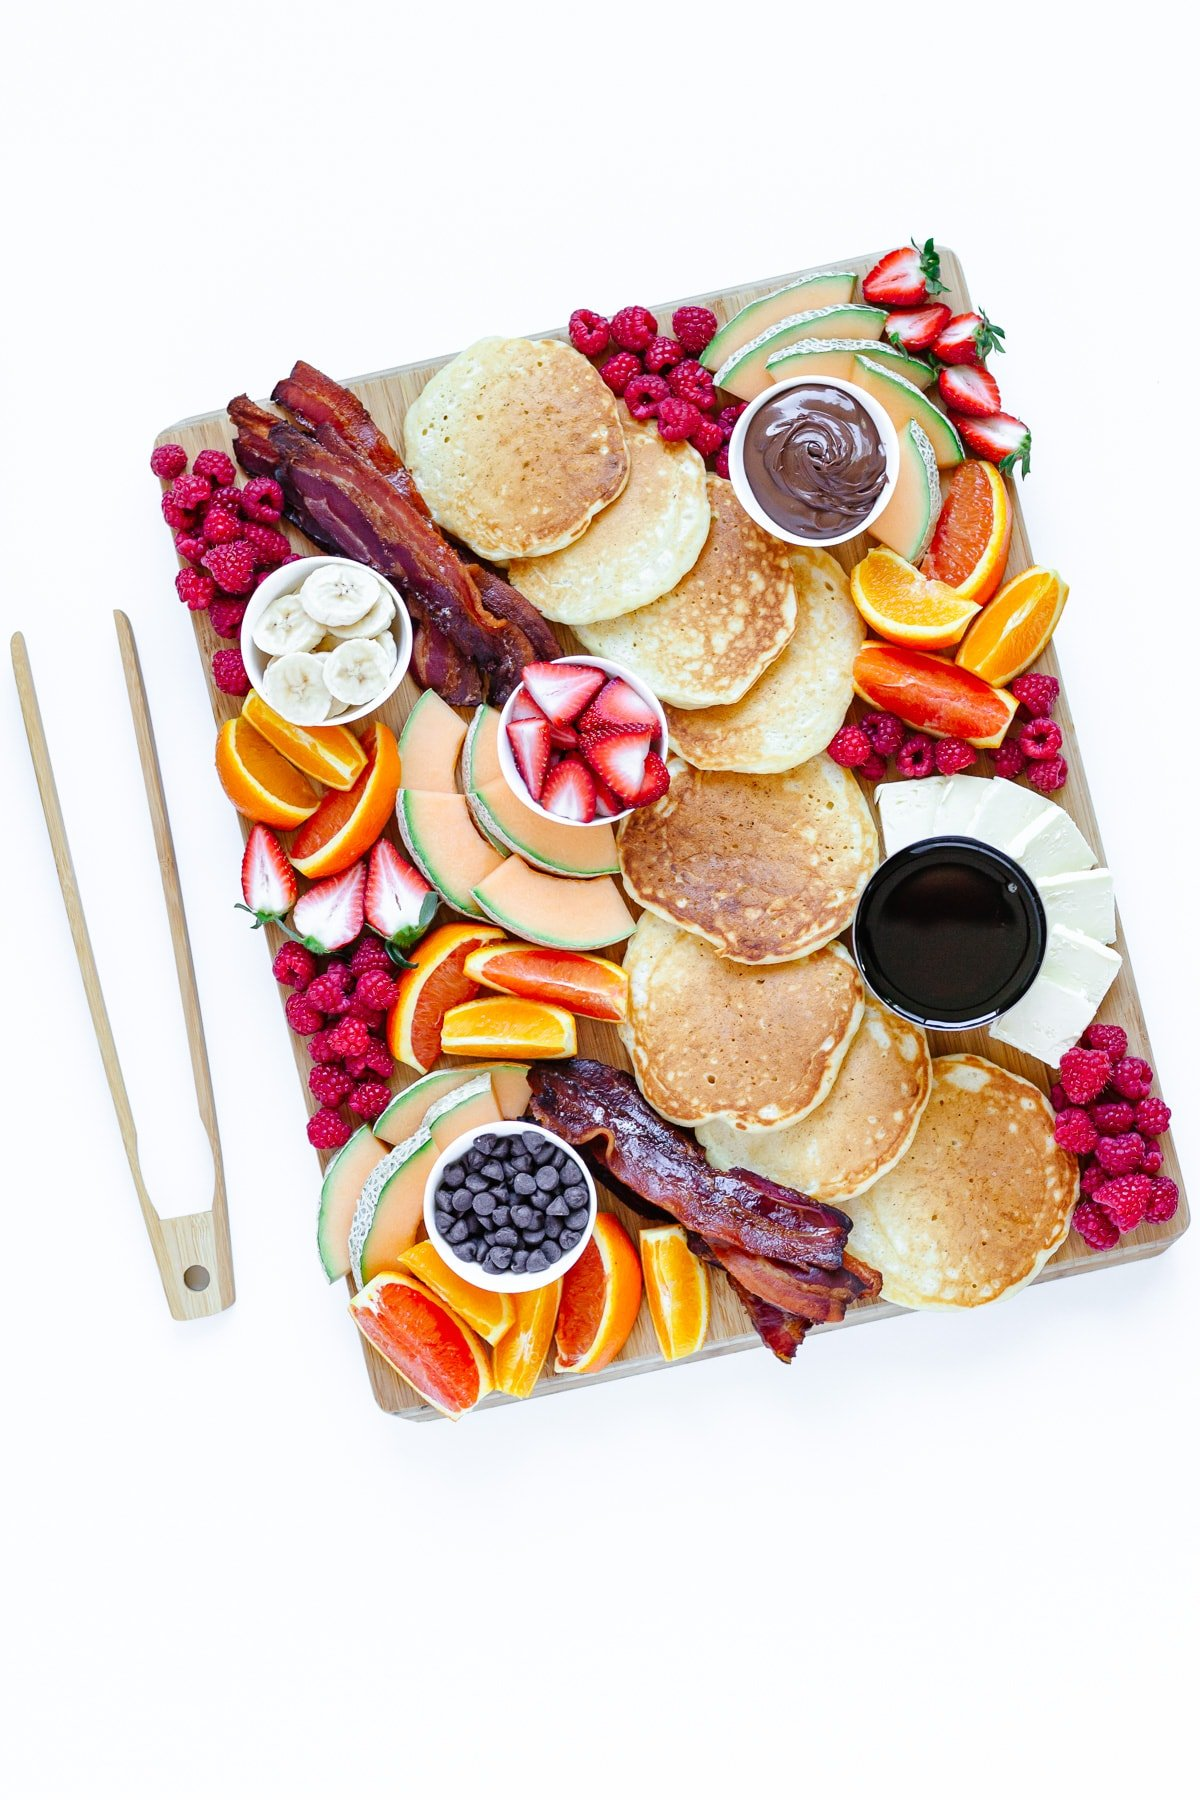 Pancake charcuterie board and wooden tongs on a white background.